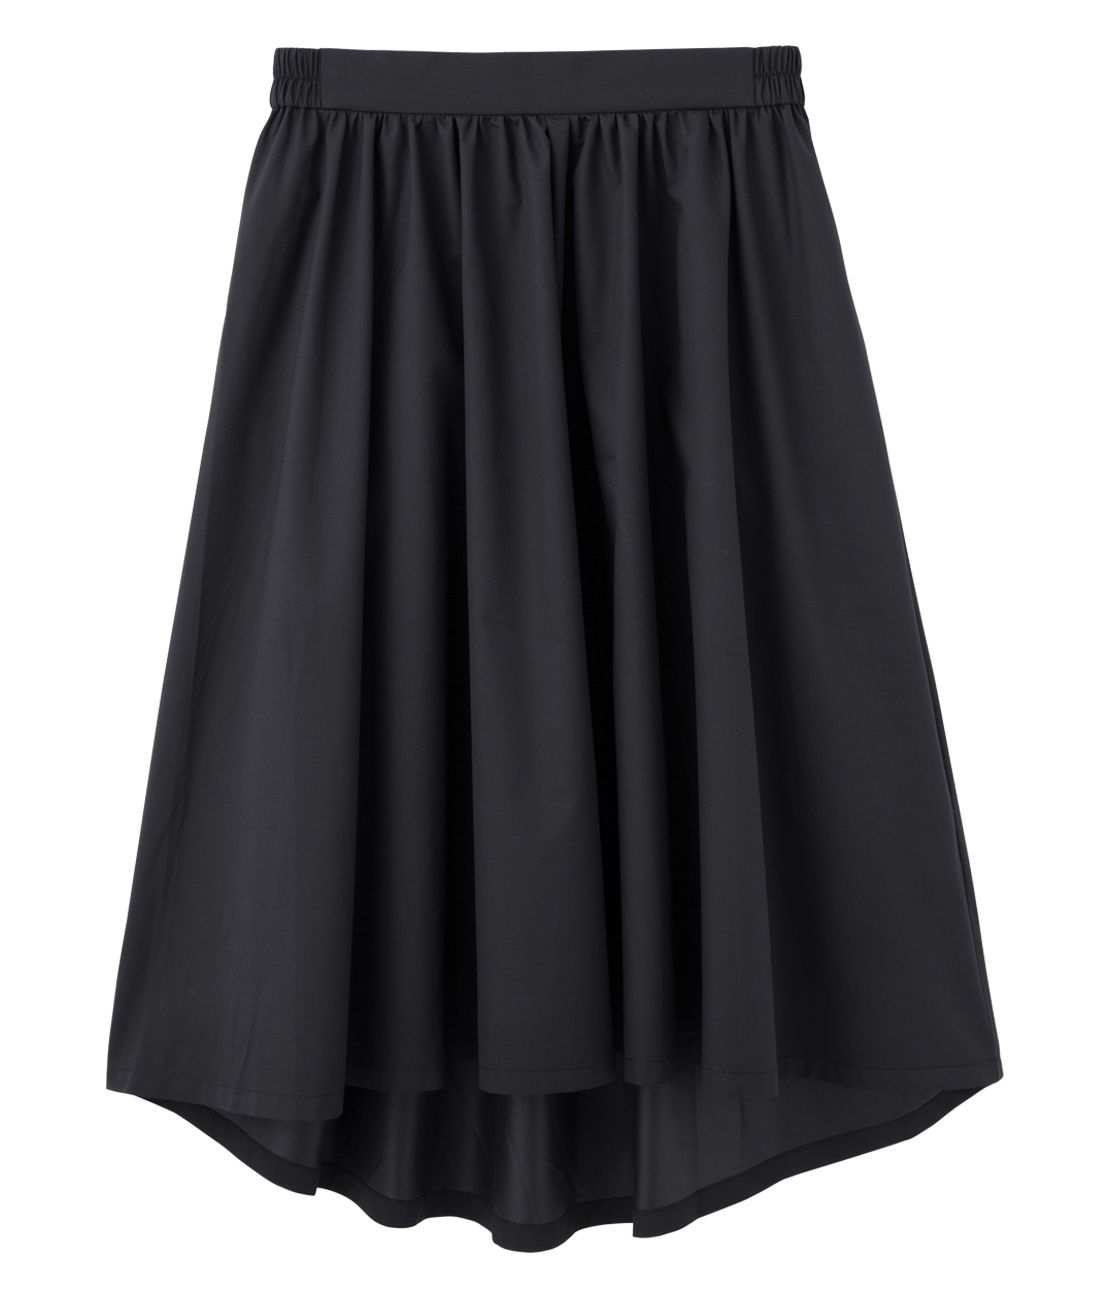 Flared skirt that repels water